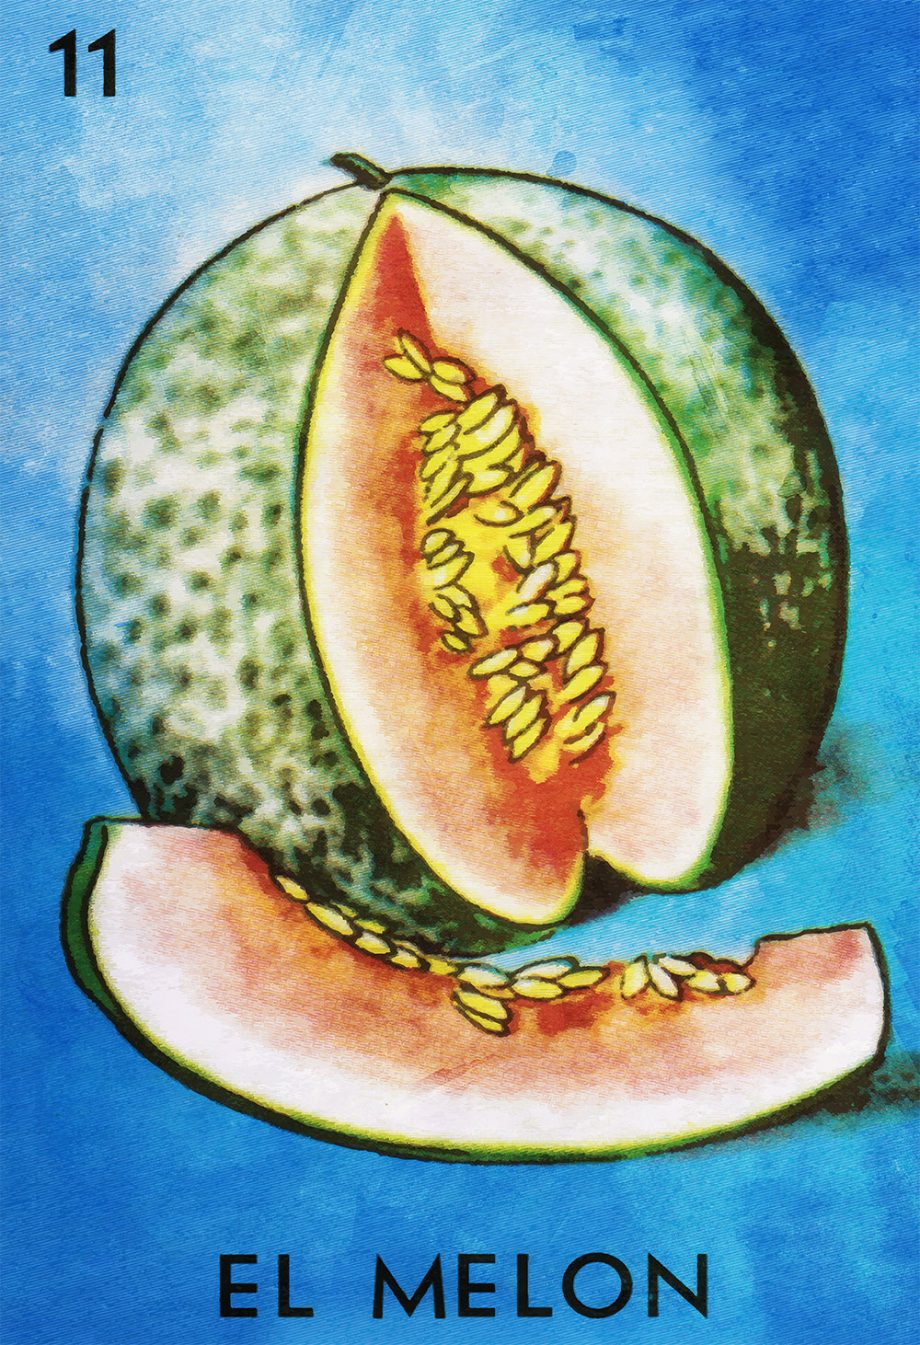 Loteria El Melon Mexican Retro Illustration Art Print Vintage Giclee Poster Wall Decor on Cotton Canvas and Satin Photo Paper